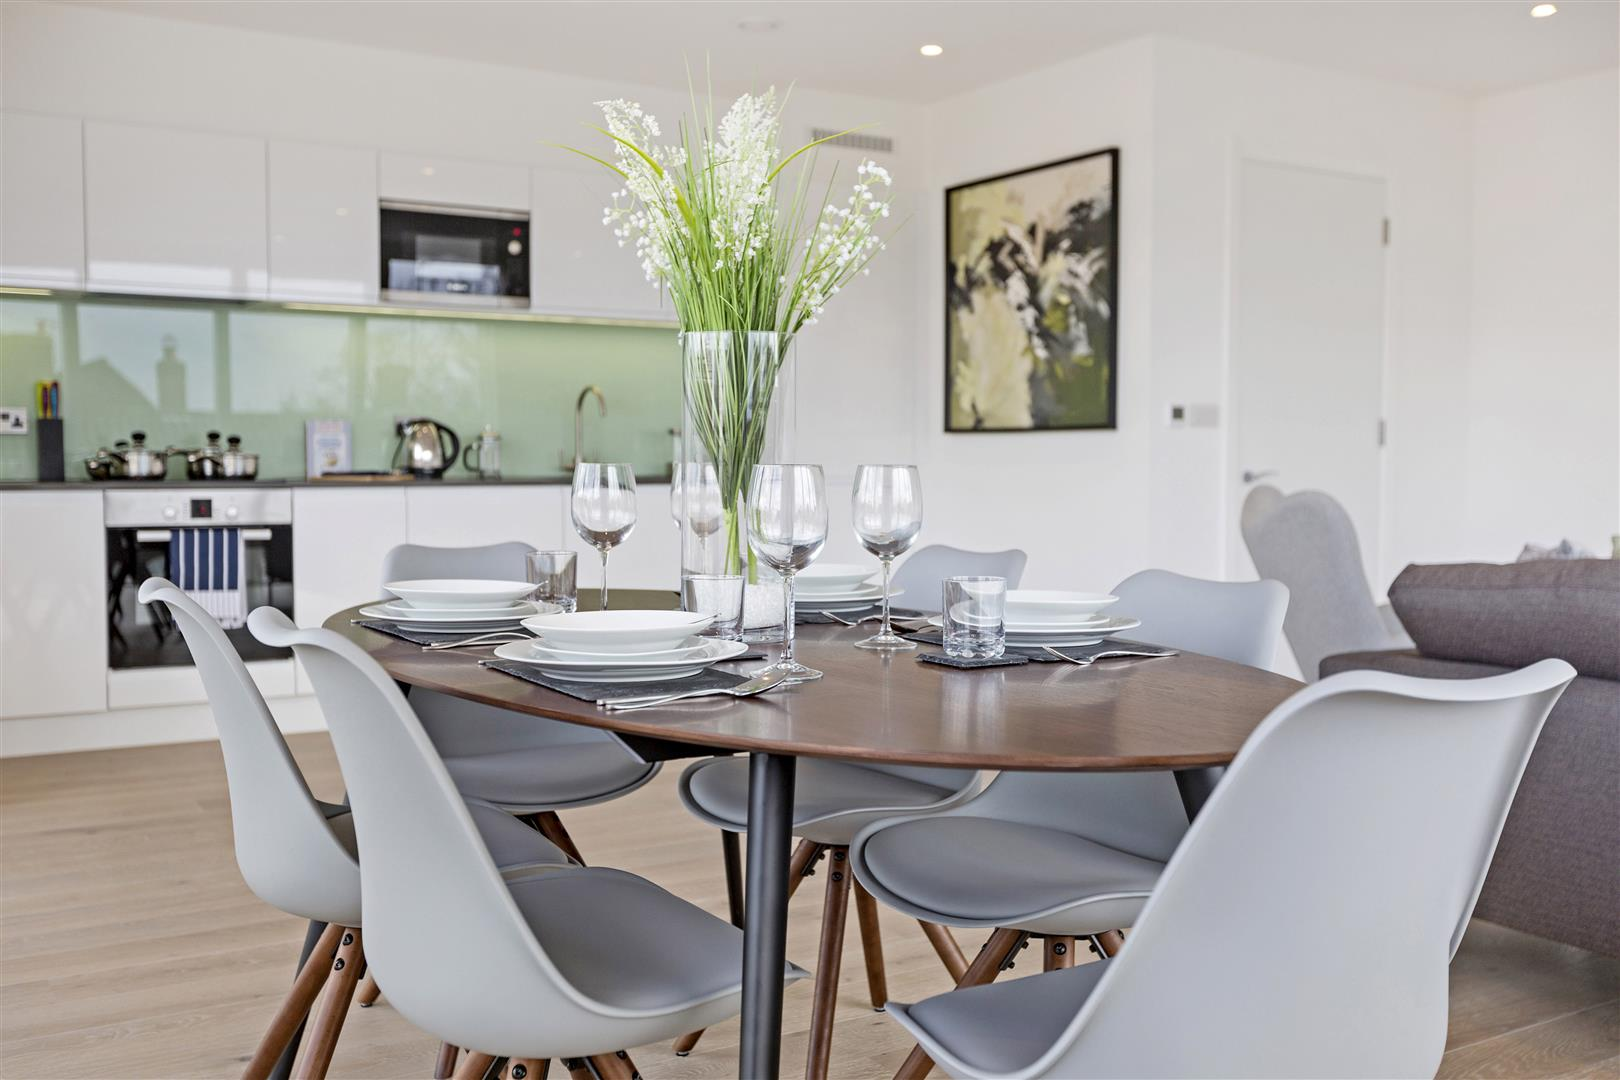 2 Bedroom Flat For Sale In Stage House Montague Road Wimbledon Sw19 London